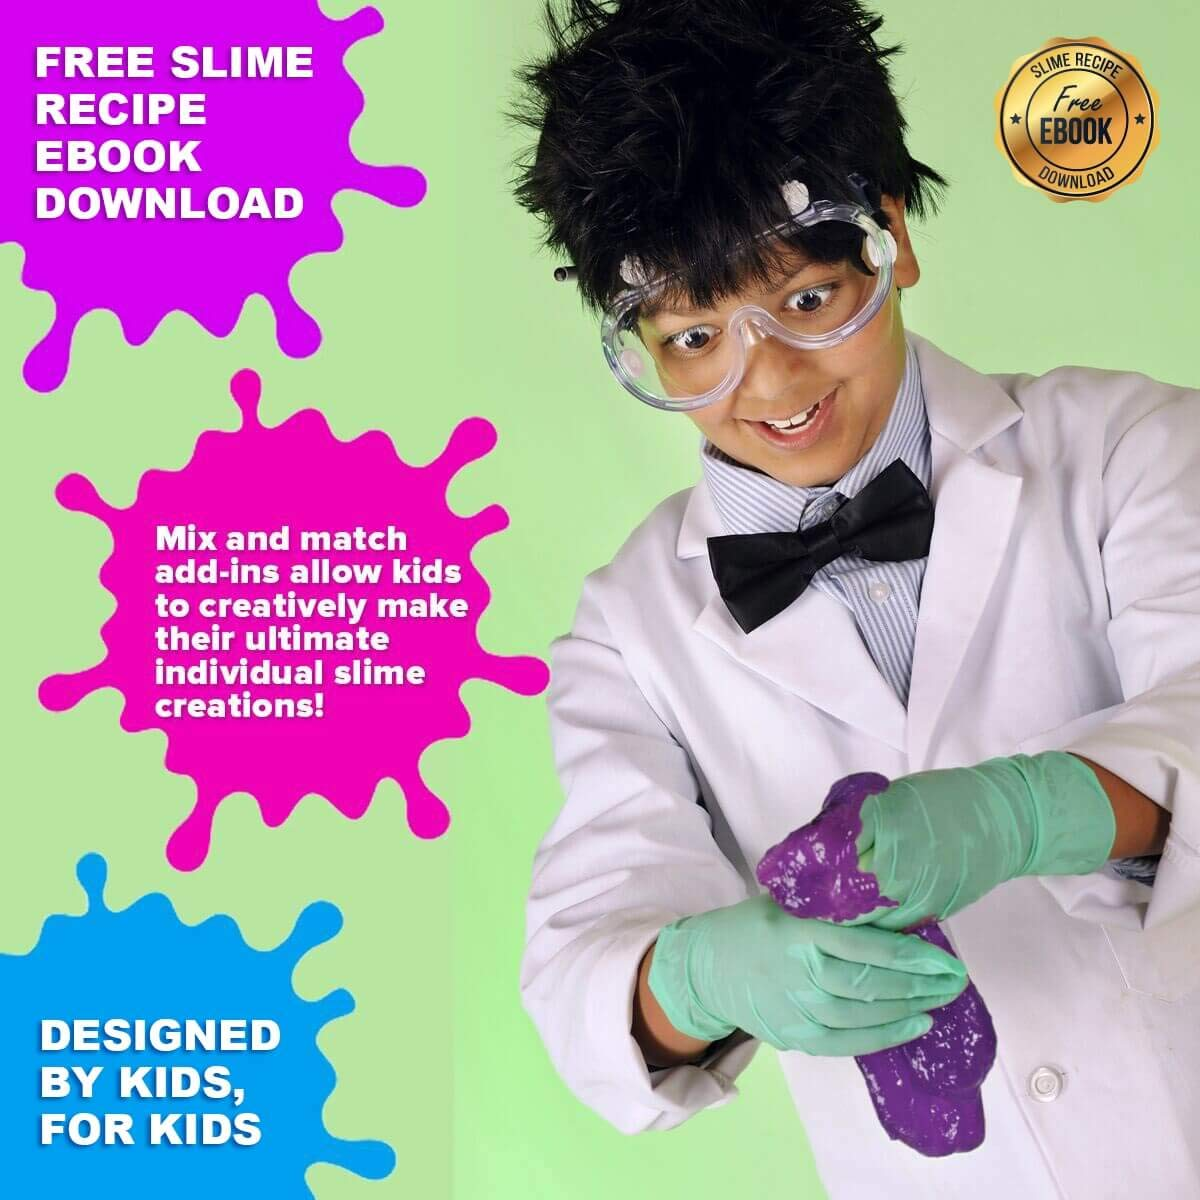 Ultimate Slime Kit for Girls and Boys | Slime Kit with Slime Supplies | Complete DIY Slime Making Kit | Includes Slime Ingredients, 10 Colors, 8 Different Add-Ins | Colorful Slime Kits for Family Fun by Lily and Lee's Craft Accessories Shoppe (Image #5)